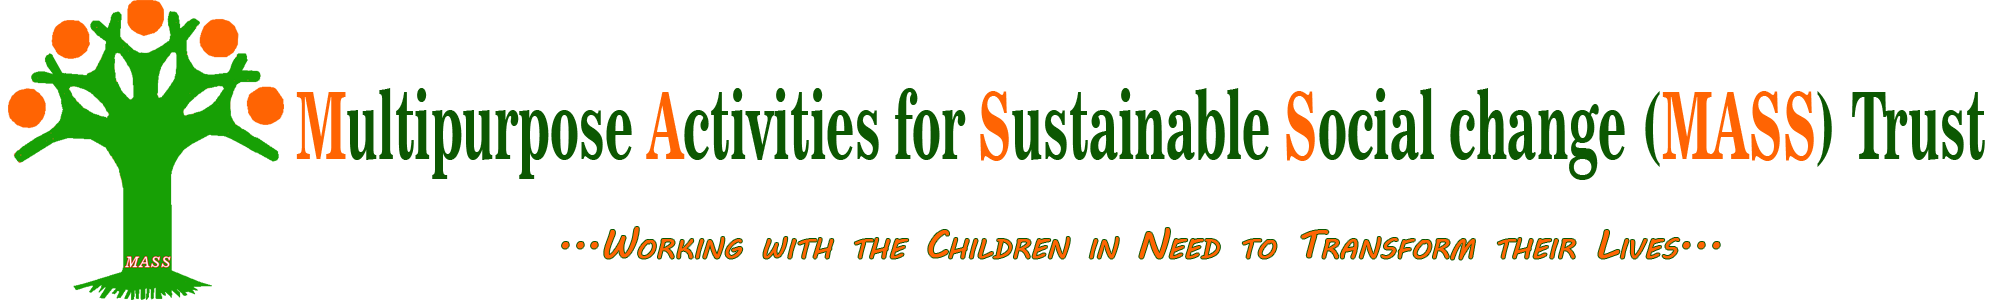 Multipurpose Activities for Sustainable Social change (MASS) Trust